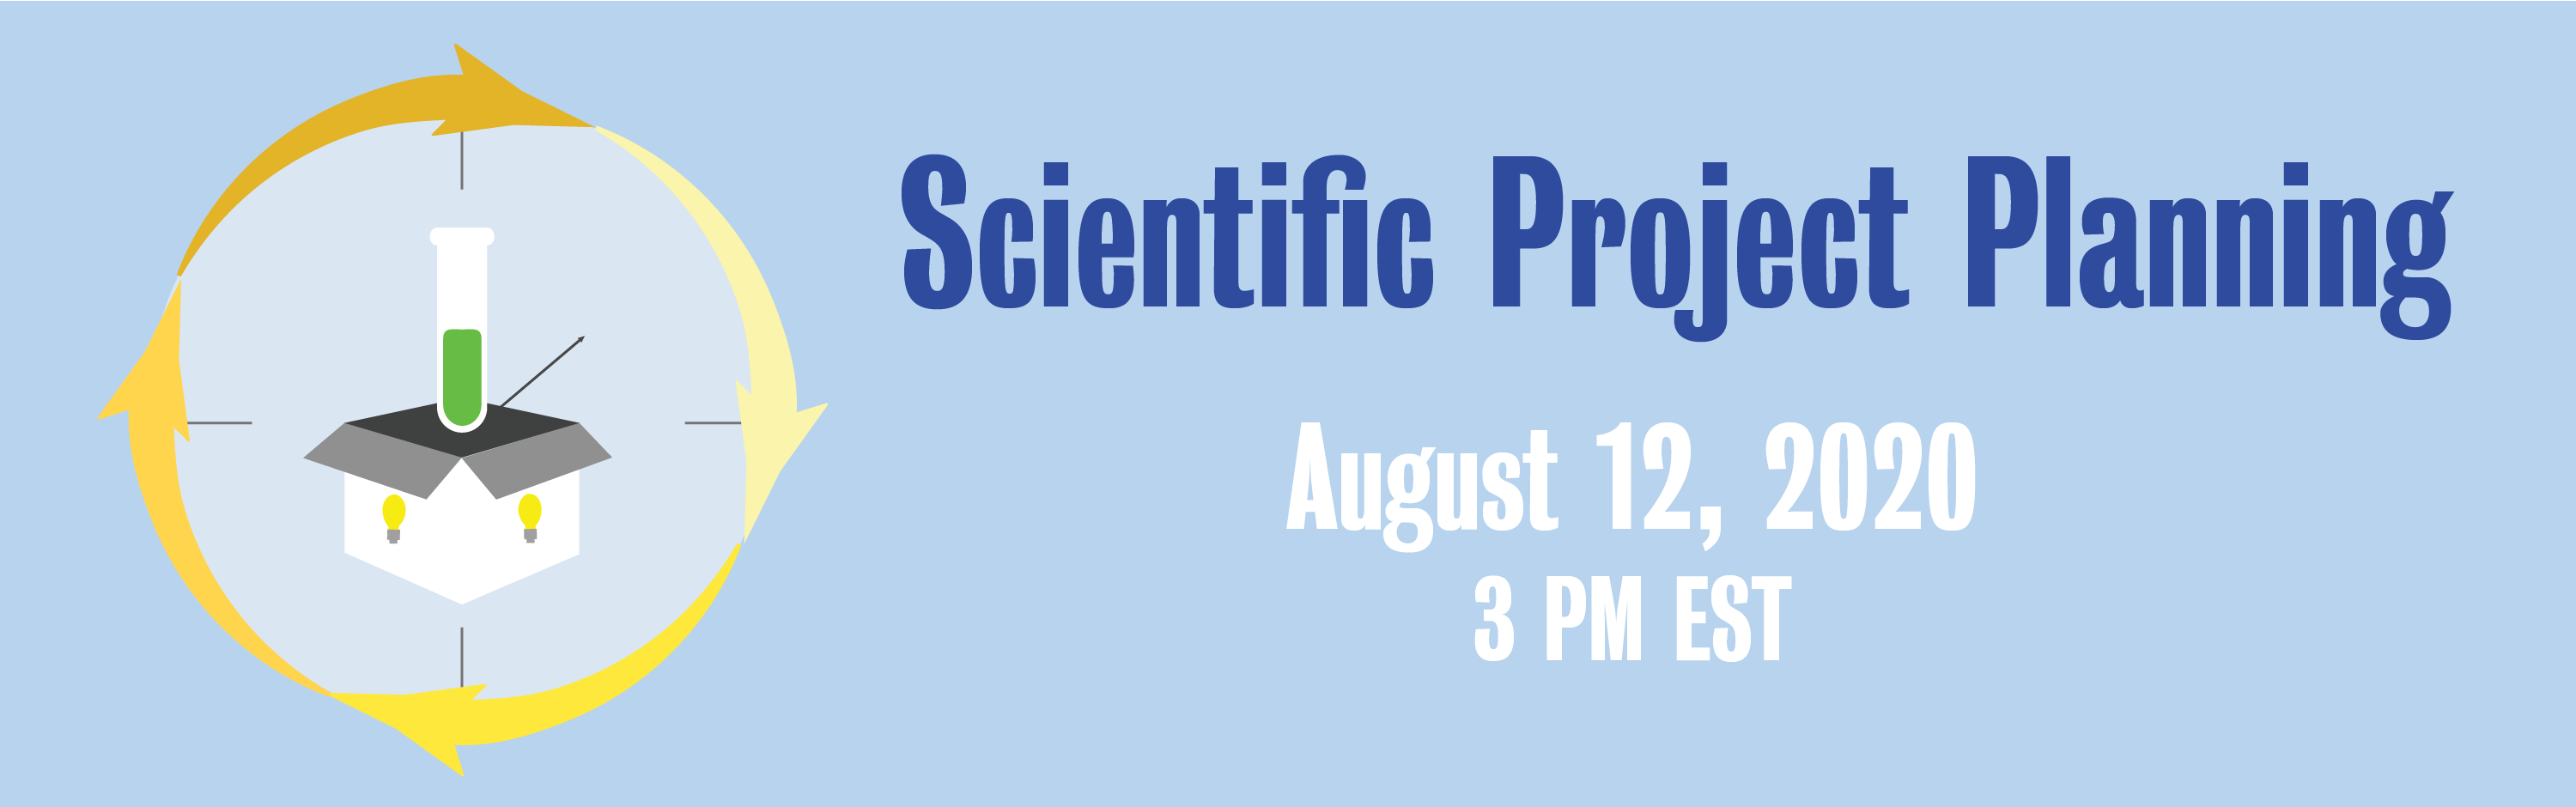 Scientific Project Planning banner